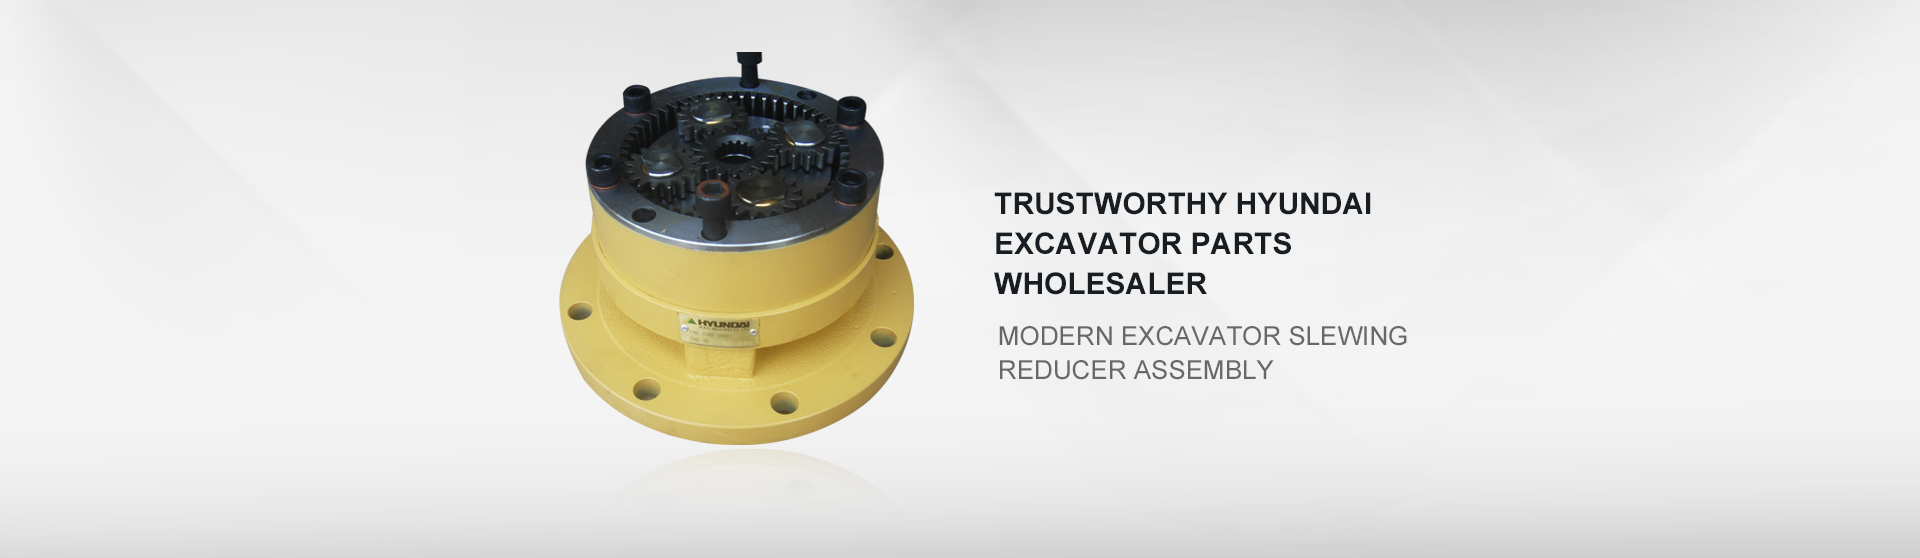 Modern excavator slewing reducer assembly